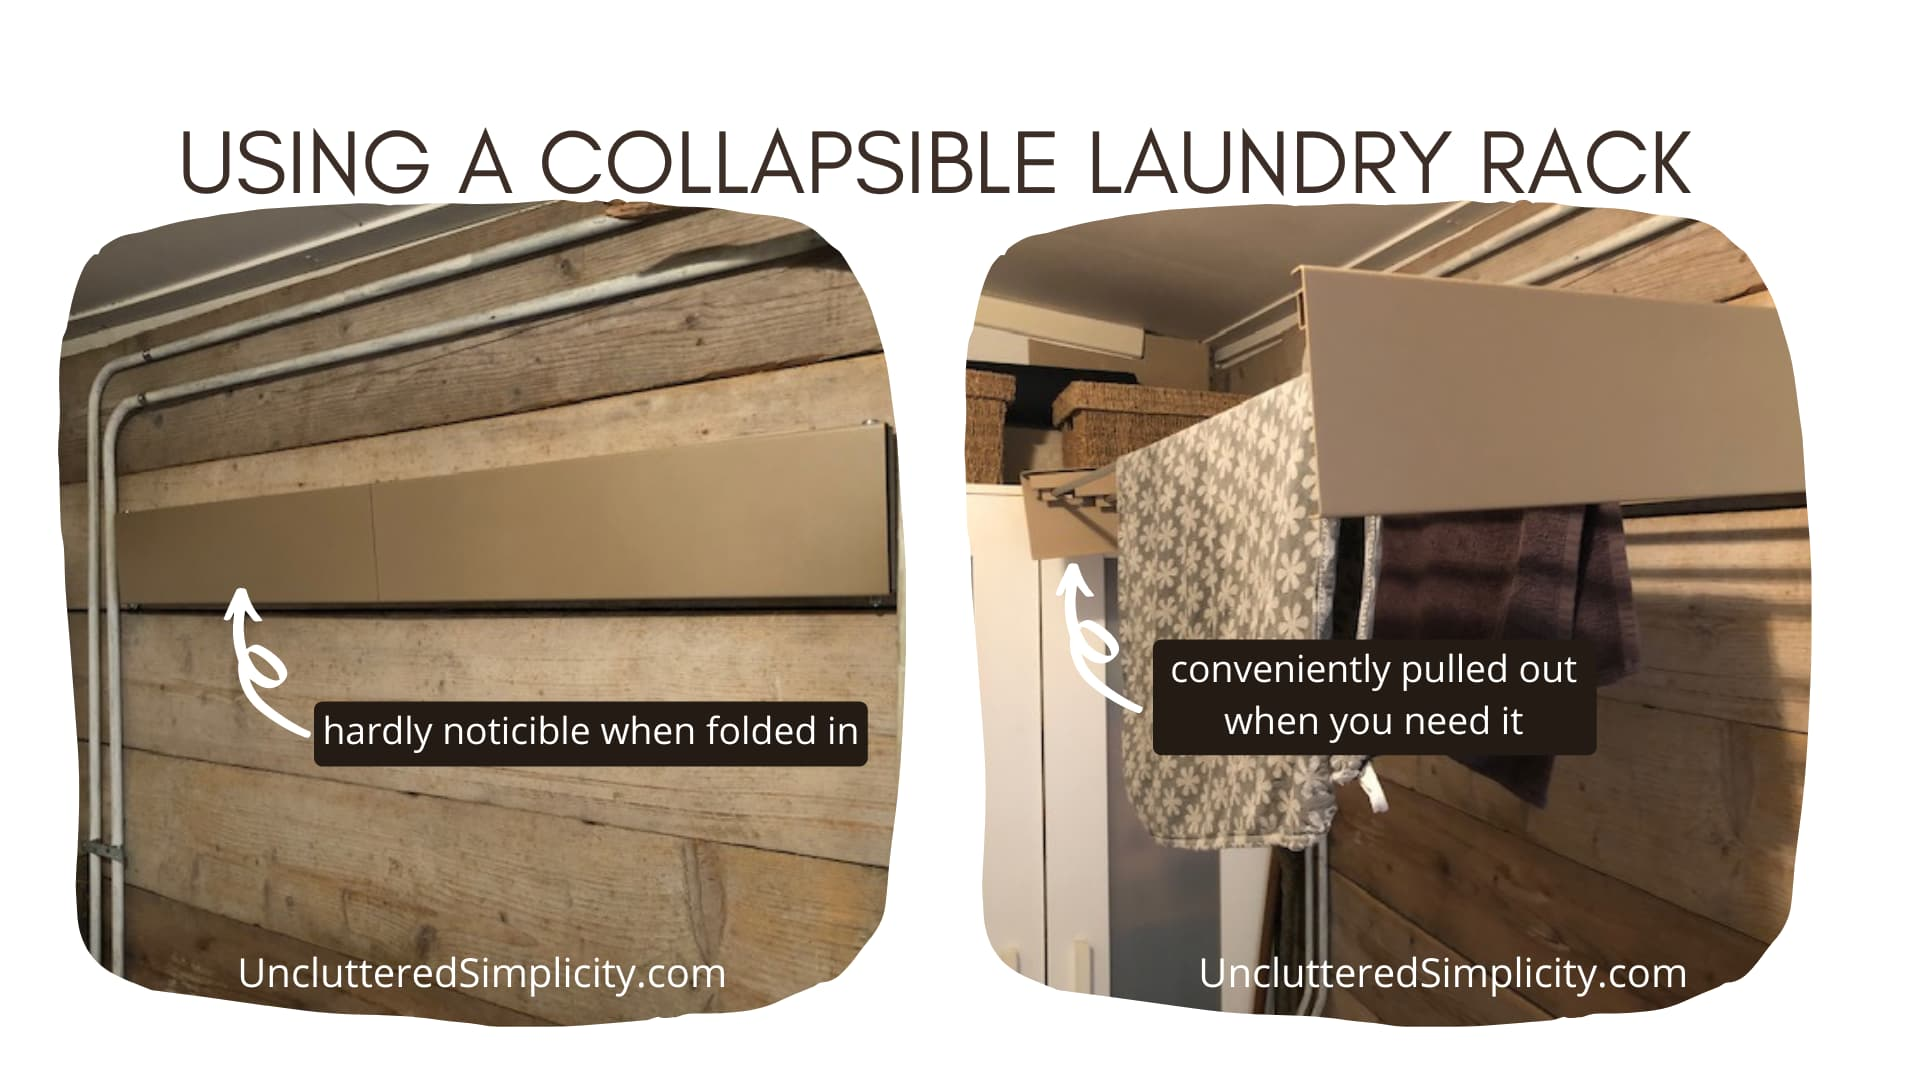 small laundry room organization idea - collapsible laundry rack